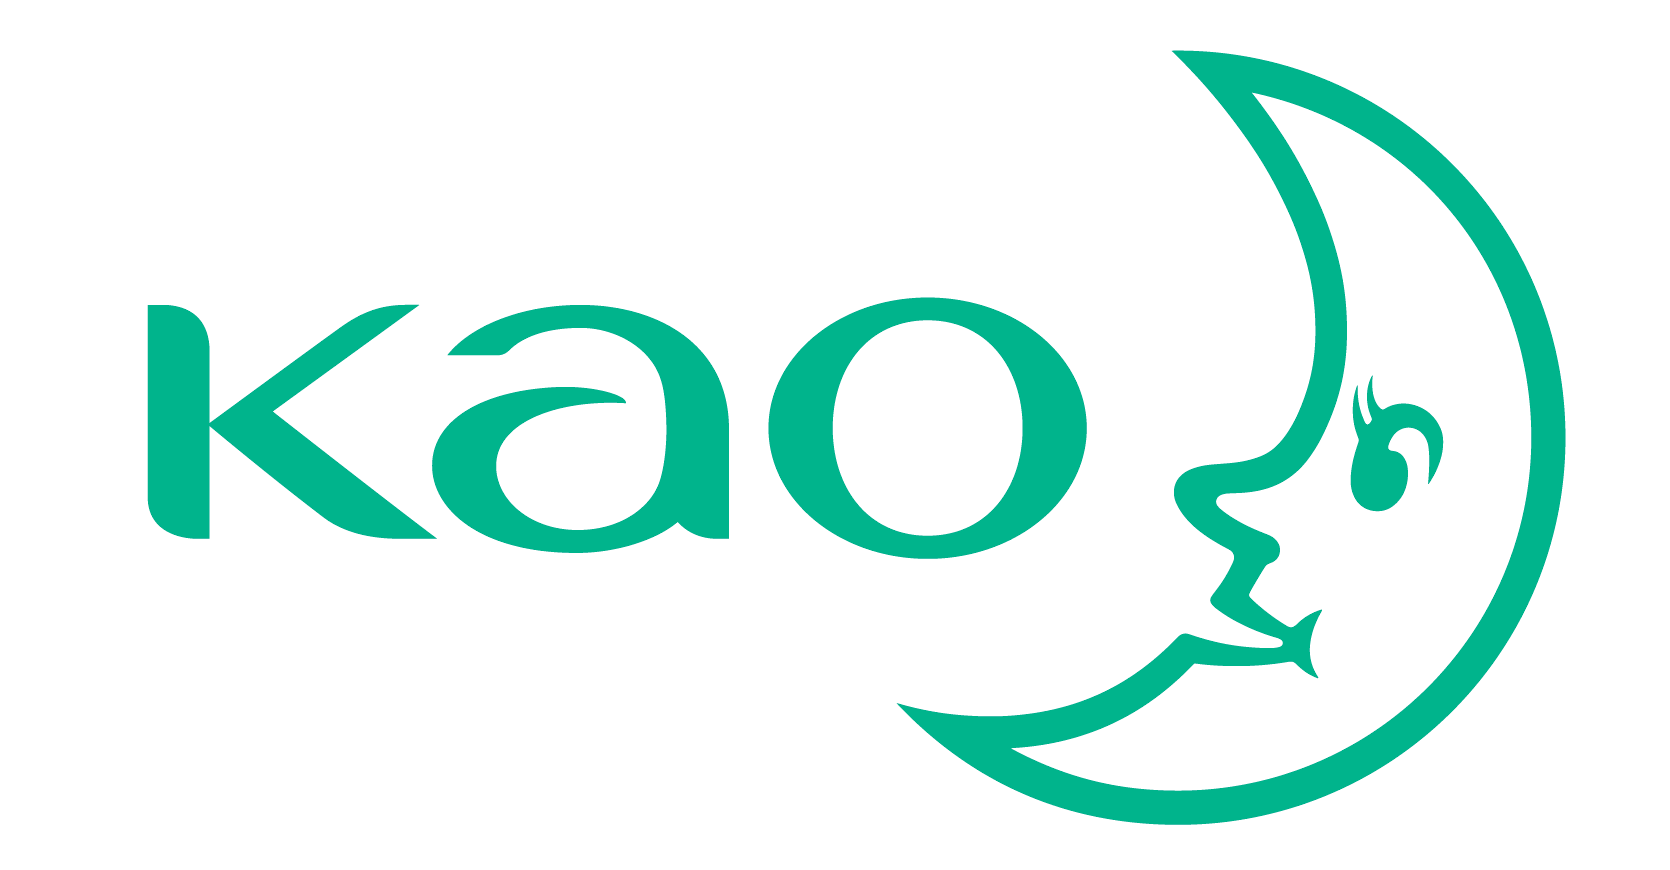 kao  u2013 logos download